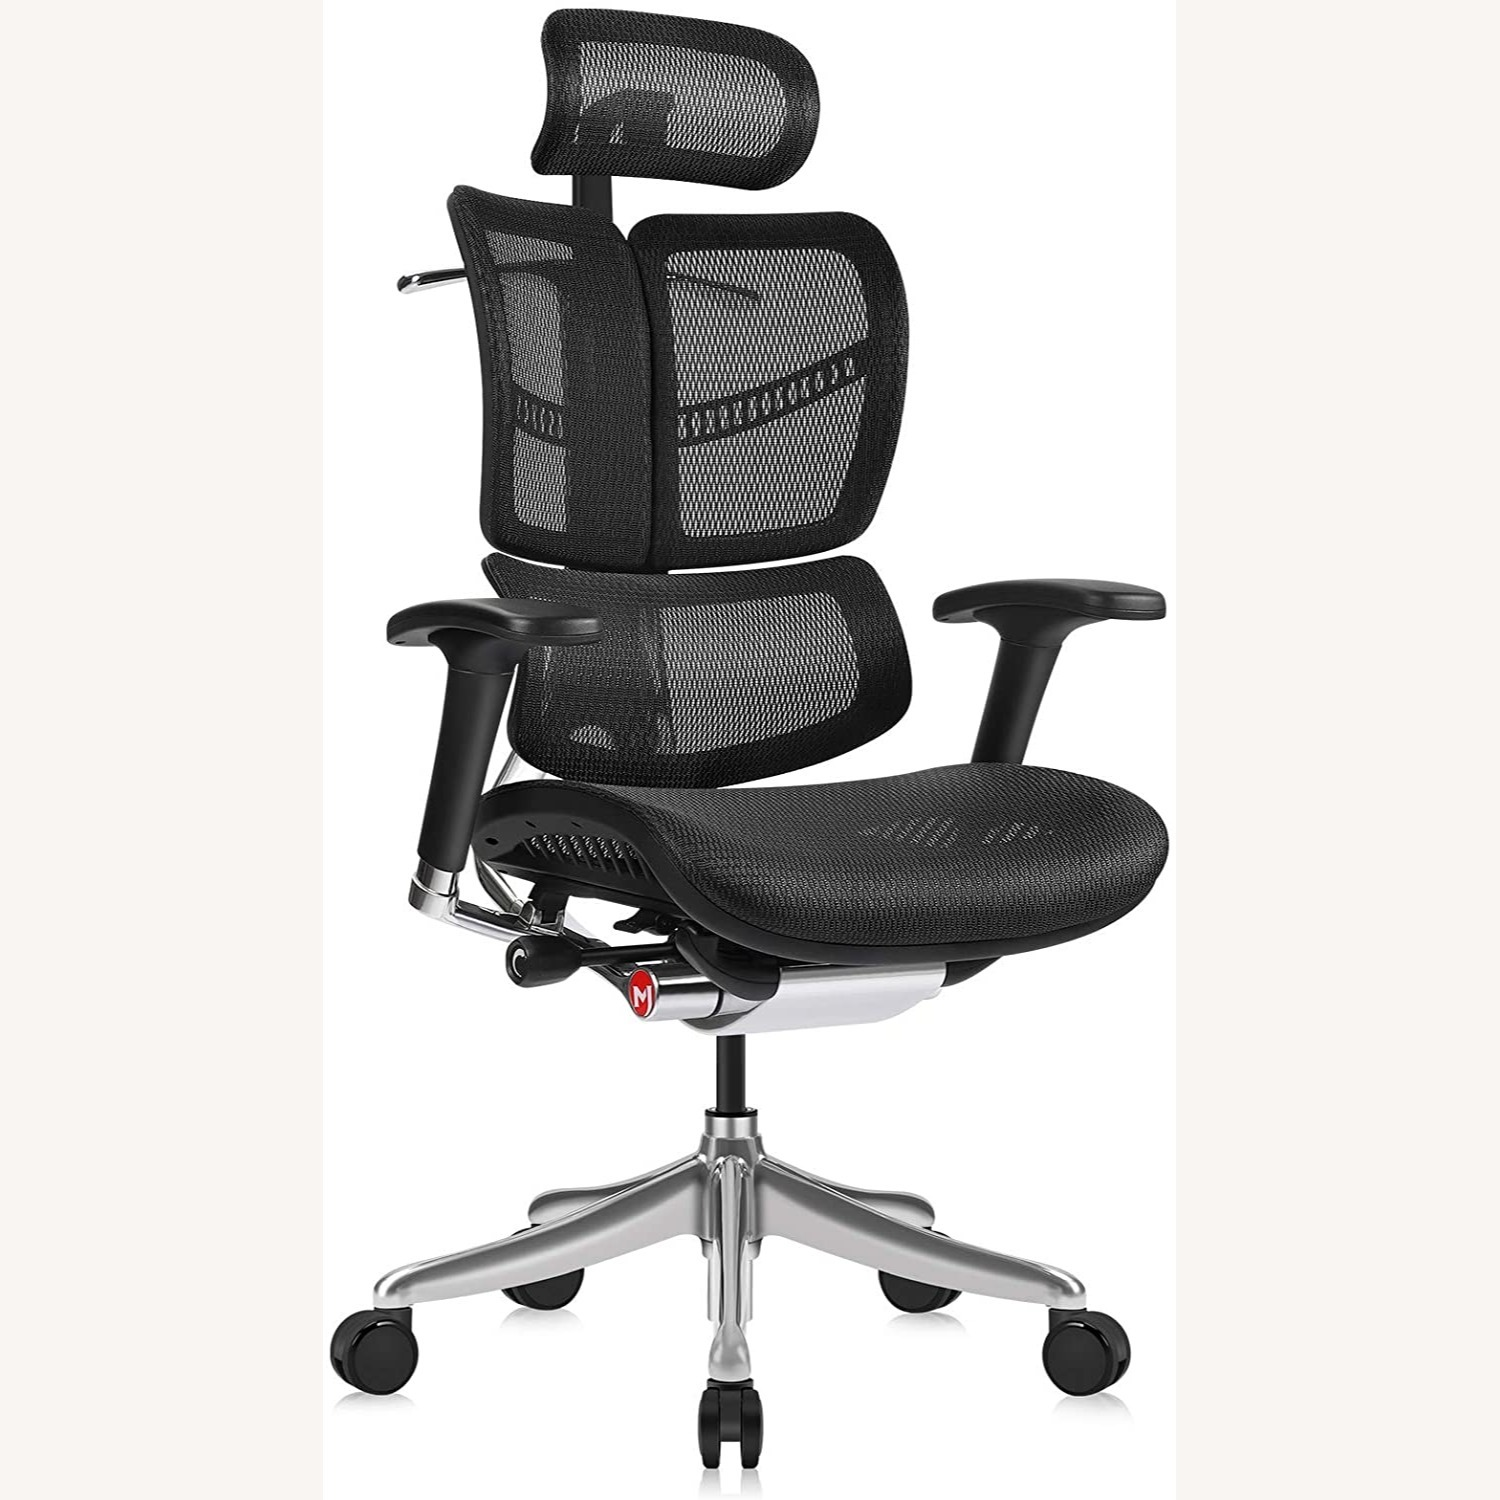 Ergonomic Office Chair with Headrest - image-4